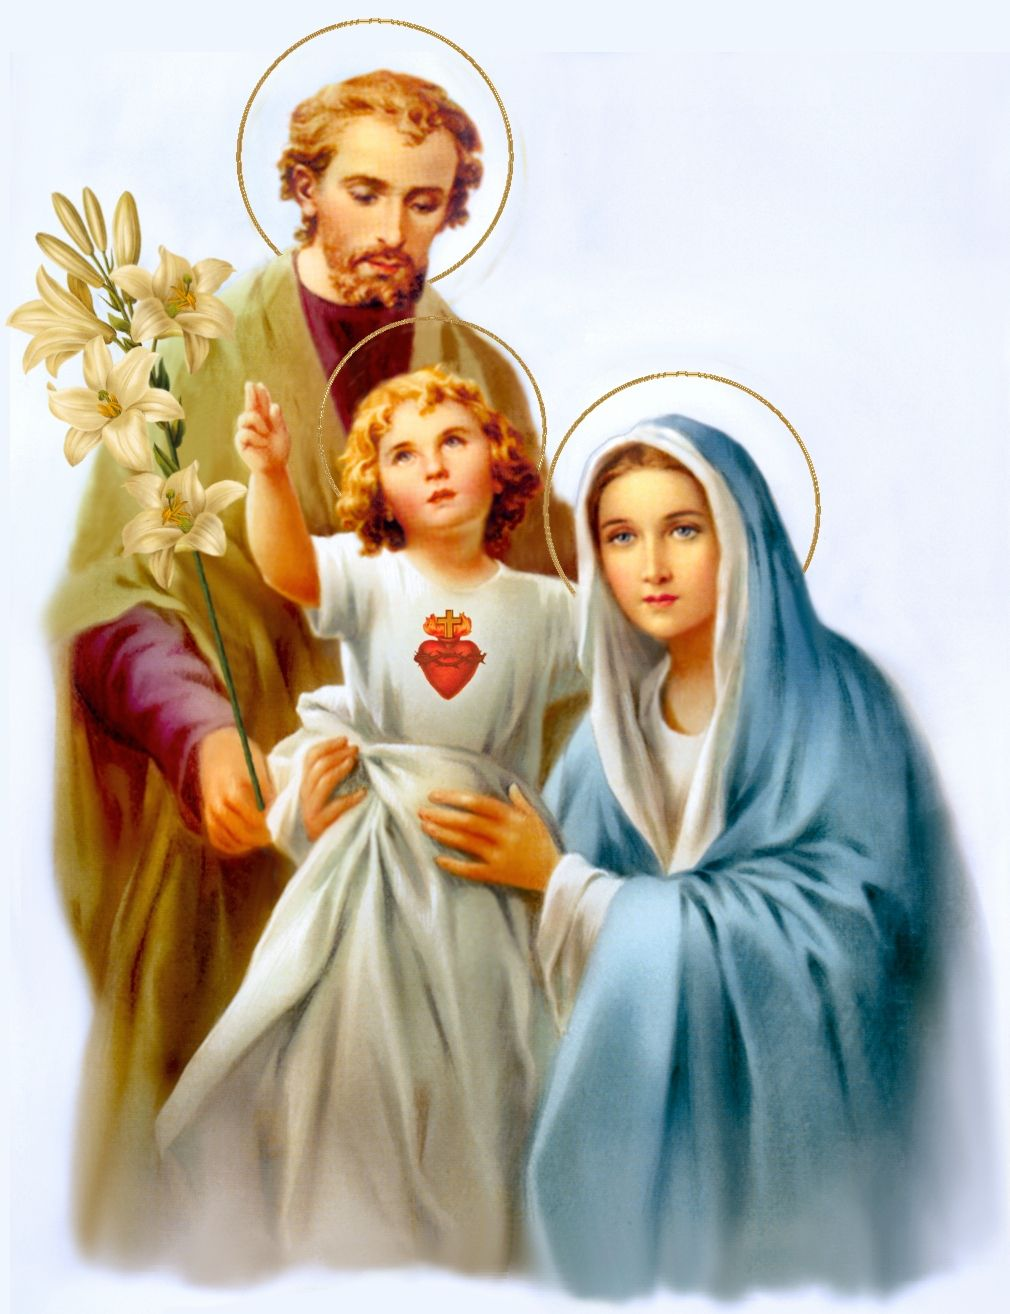 Joseph Und Joseph St Joseph And The Blessed Mother Pictures This Weblog